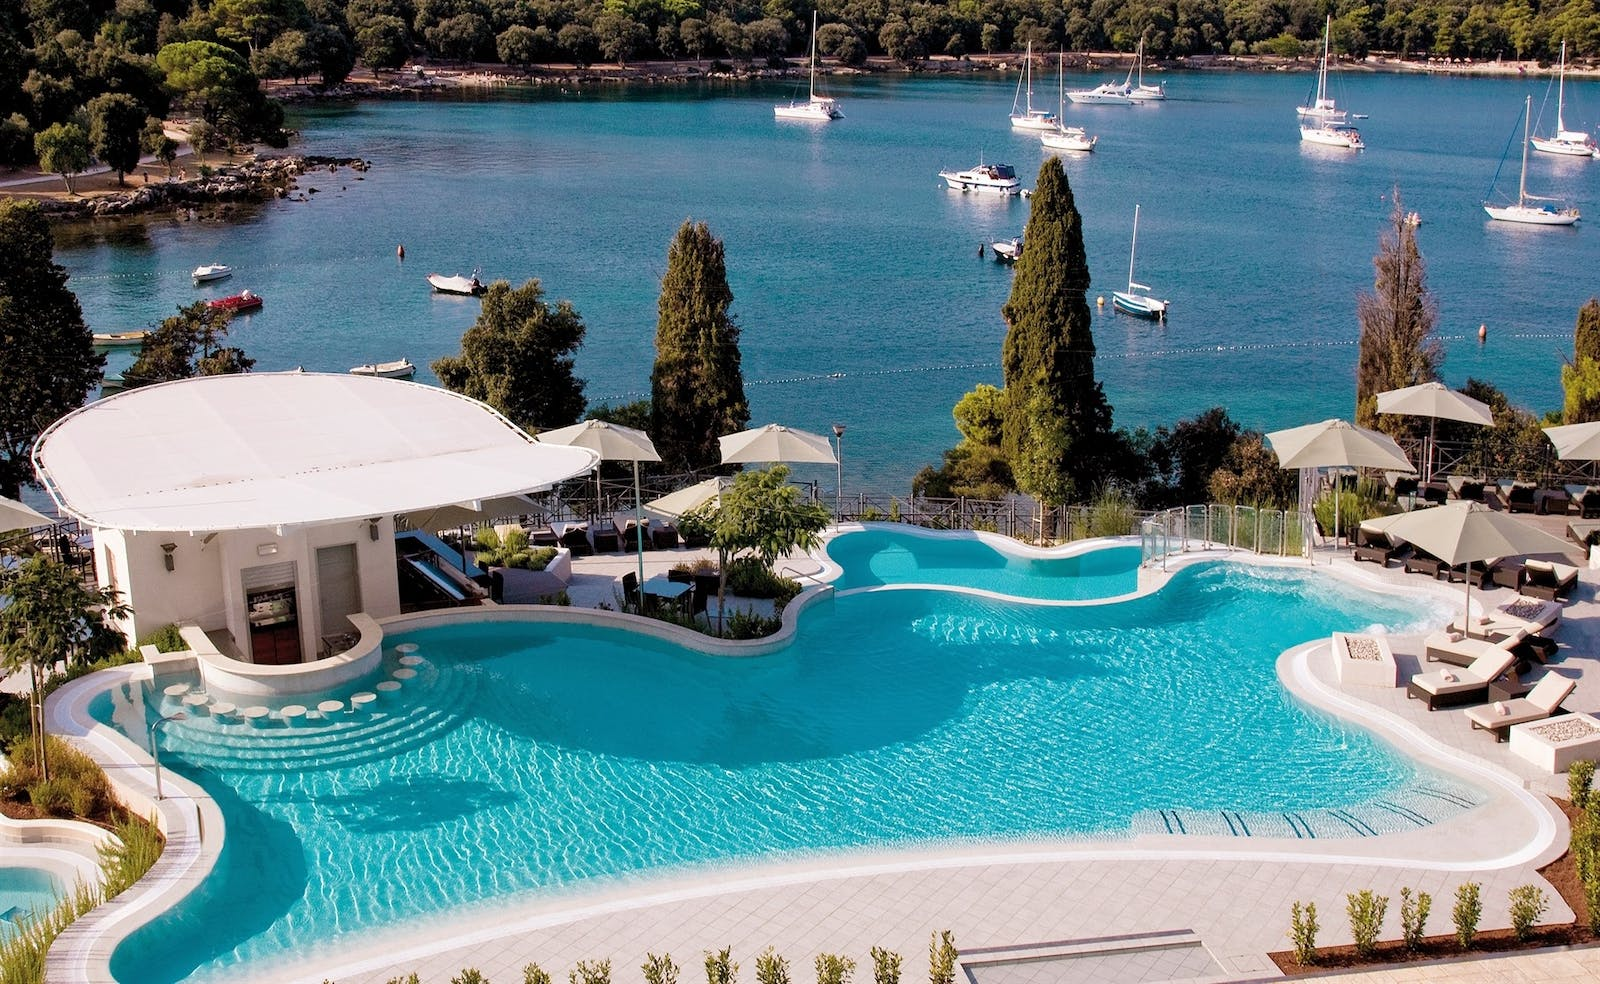 Pool Area with a View at Hotel Monte Mulini, Croatia